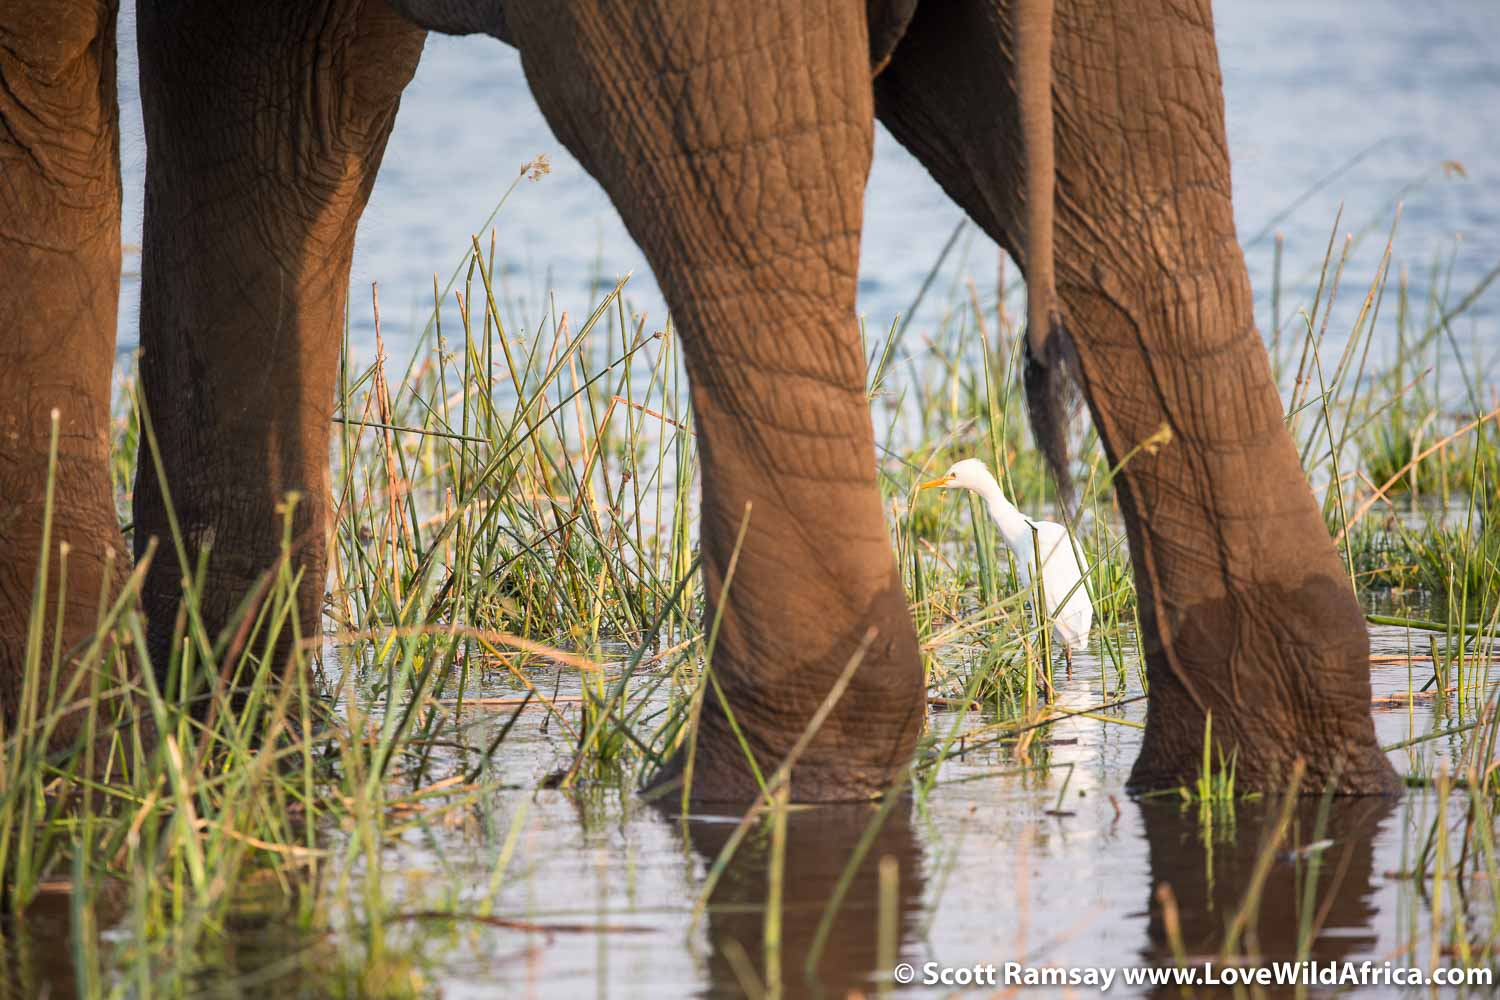 Little egret and elephant on Zambezi River in Mana Pools